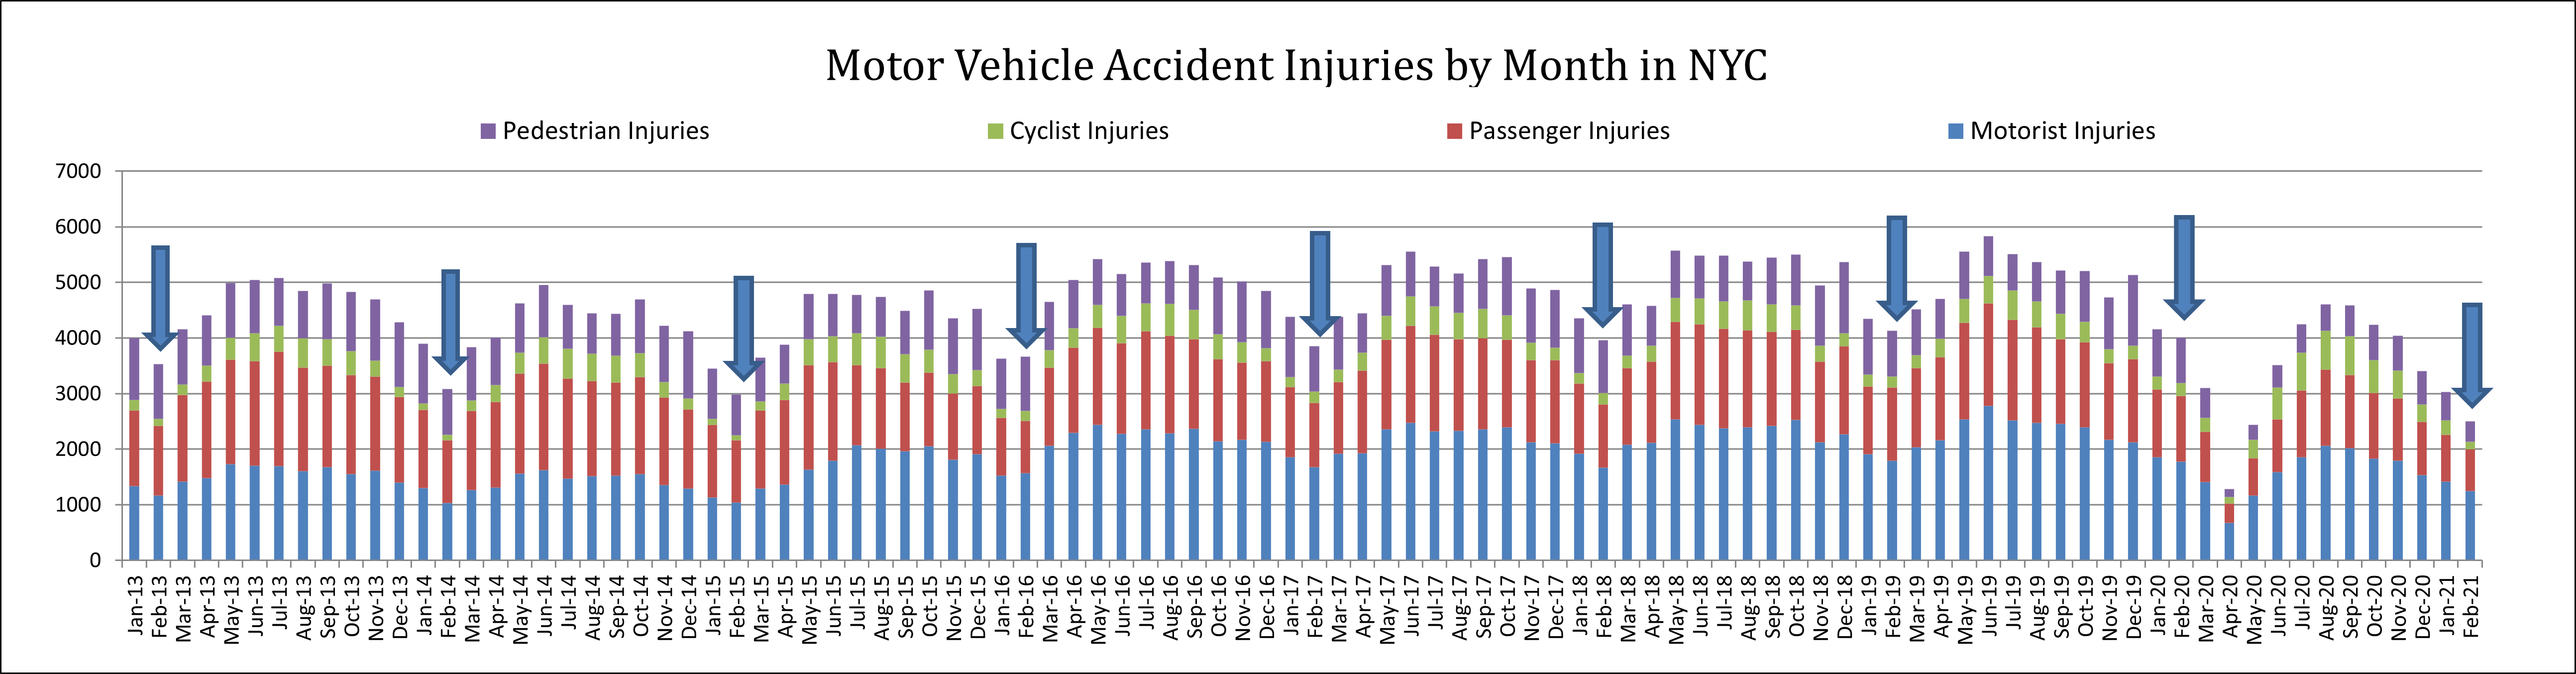 Motor vehicle accident injuries in NYC in February 2021 by category